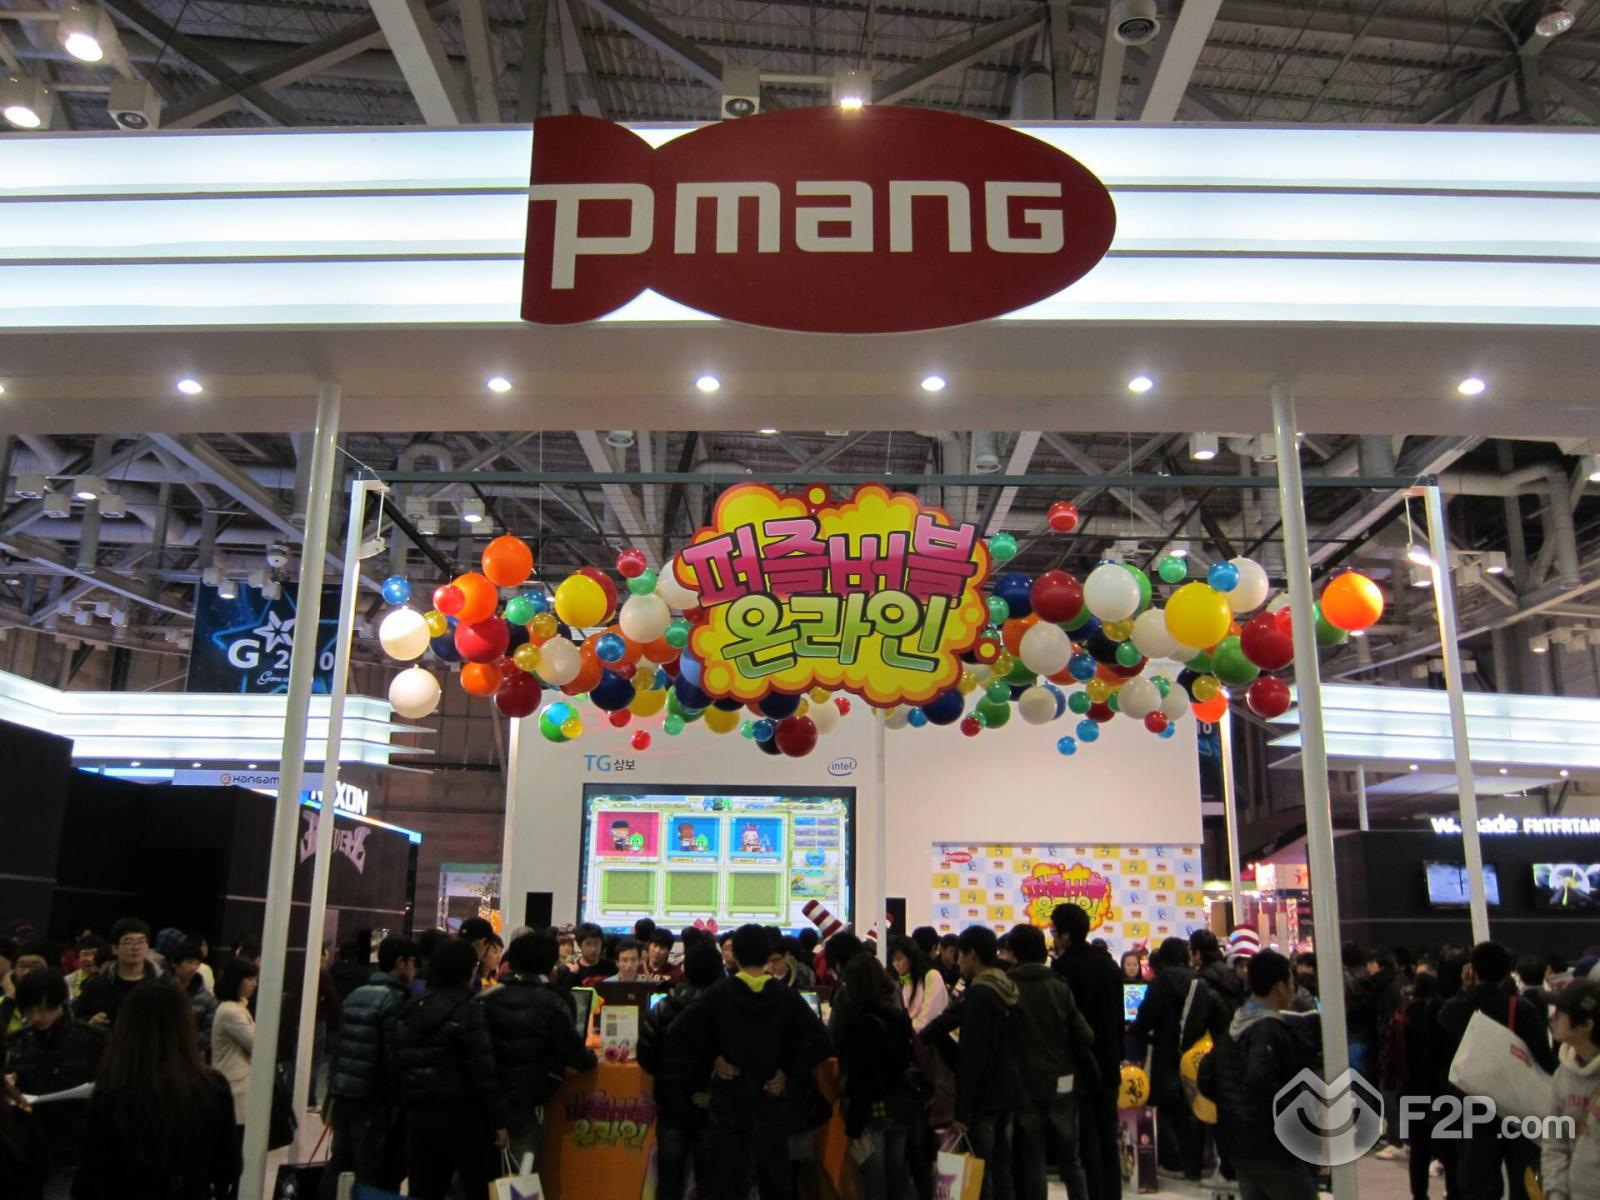 Click image for larger version.Name:Gstar 2010 F2P first day 1.jpgViews:63Size:227.5 KBID:1879